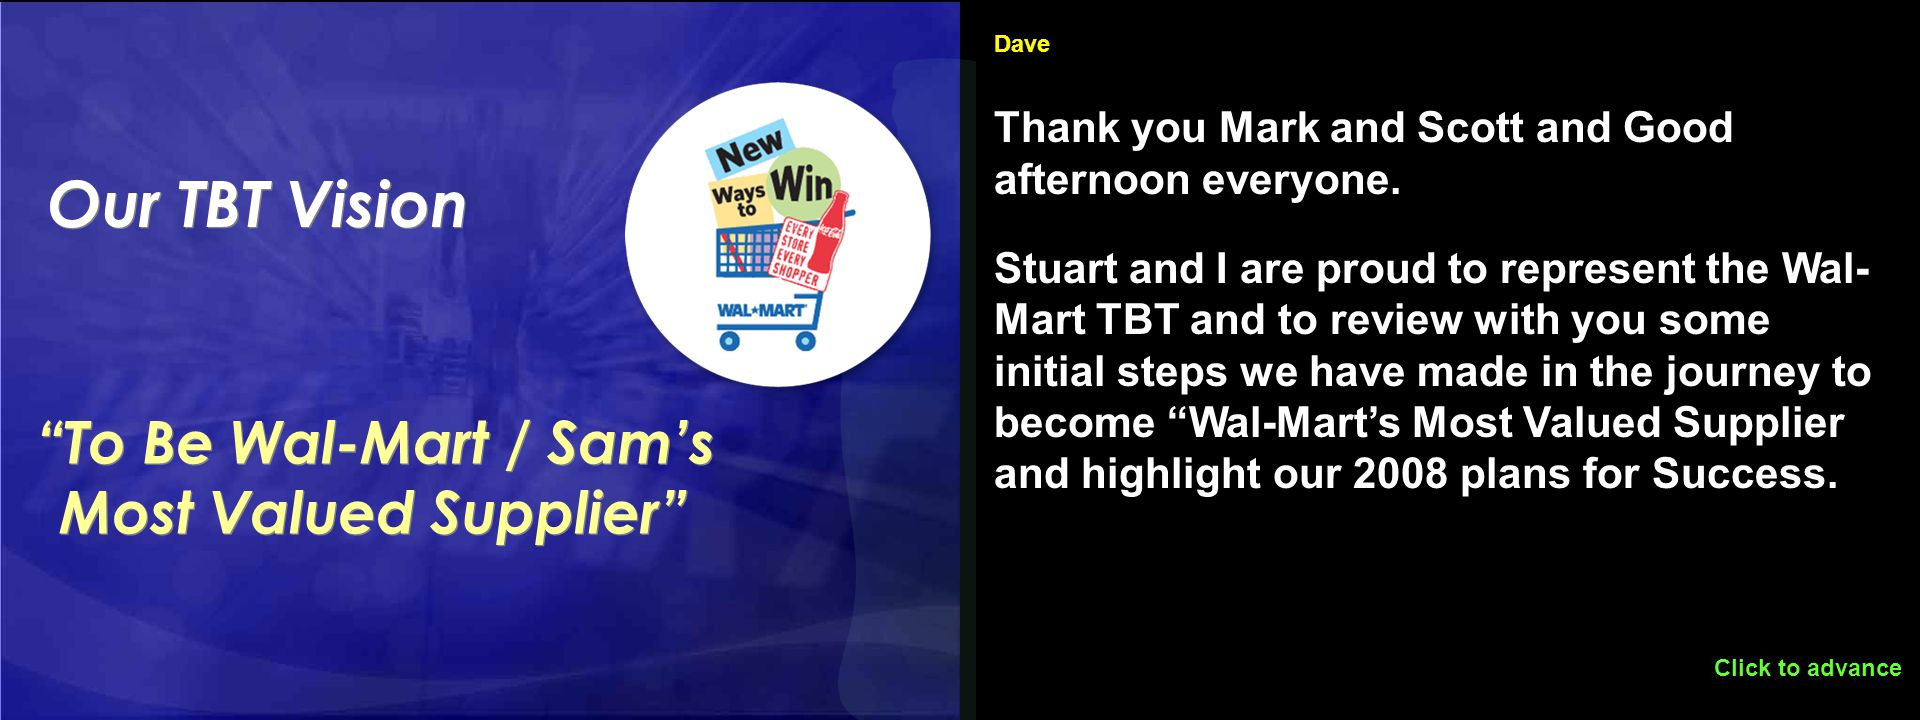 2 Click to advance Stuart Kronauge VP, Marketing, Wal-Mart - Sam's Club Team Stuart Kronauge VP, Marketing, Wal-Mart - Sam's Club Team Dave Thank you Mark and Scott and Good afternoon everyone.